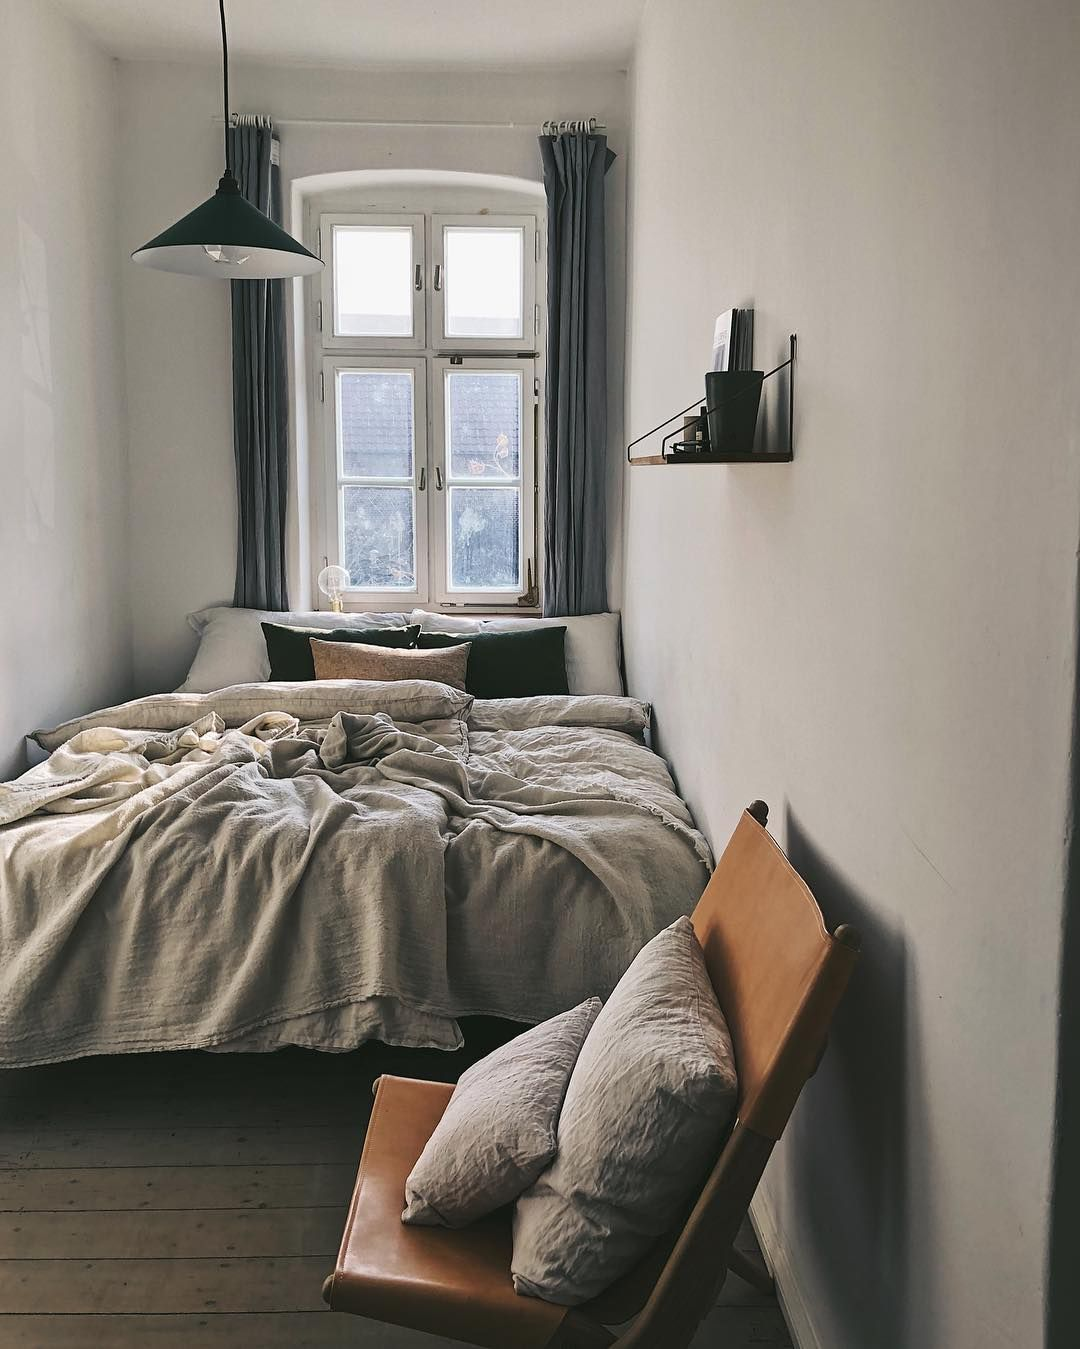 bedroom inspiration bedlinen vintage interior Kleine